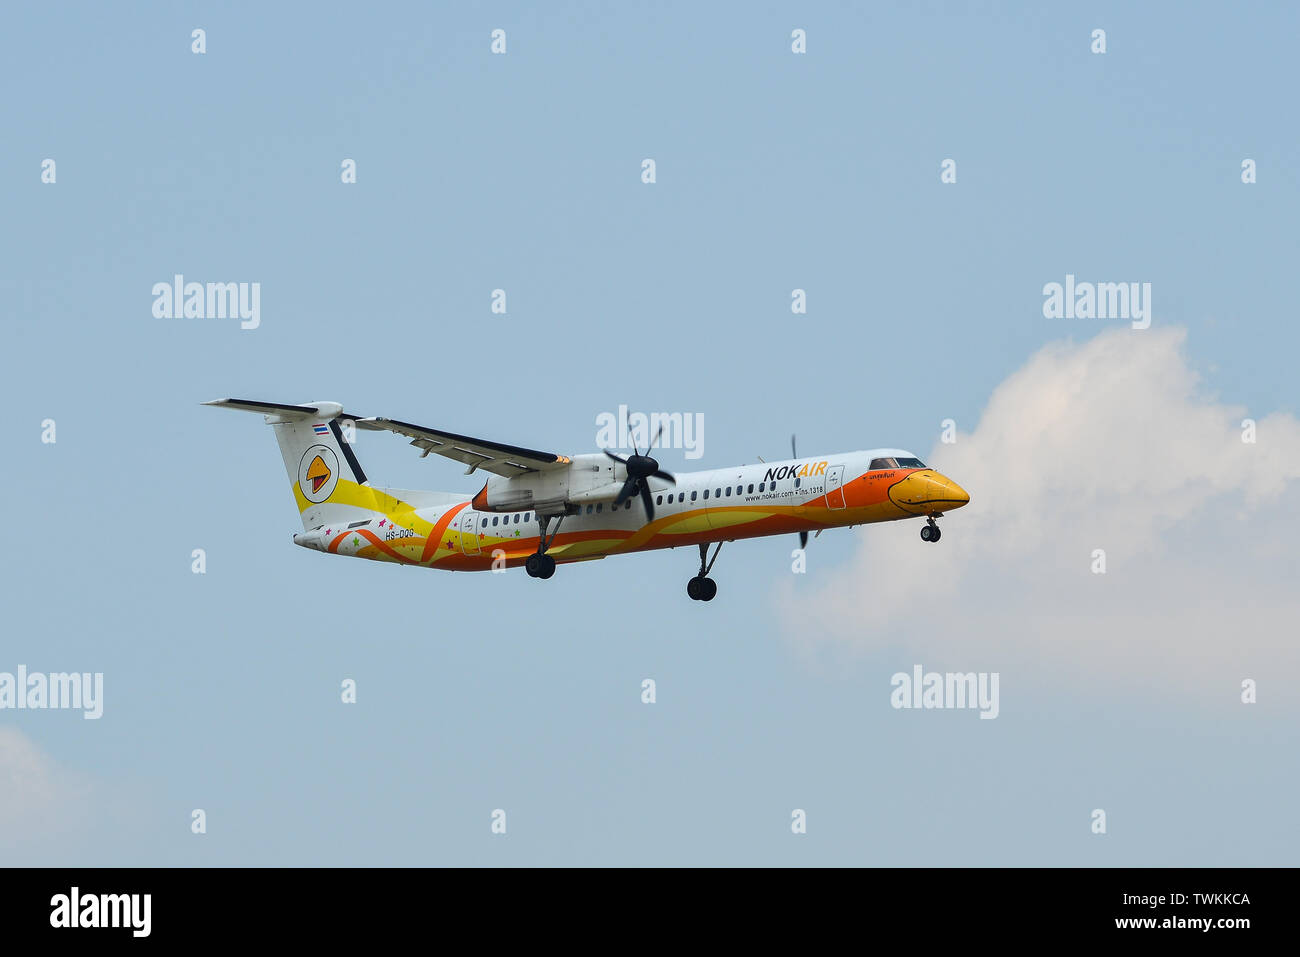 Bangkok, Thailand - Apr 24, 2018. HS-DQG Nok Air De Havilland Canada Dash 8-400 landing at Don Muang Airport (DMK) in Bangkok, Thailand. - Stock Image